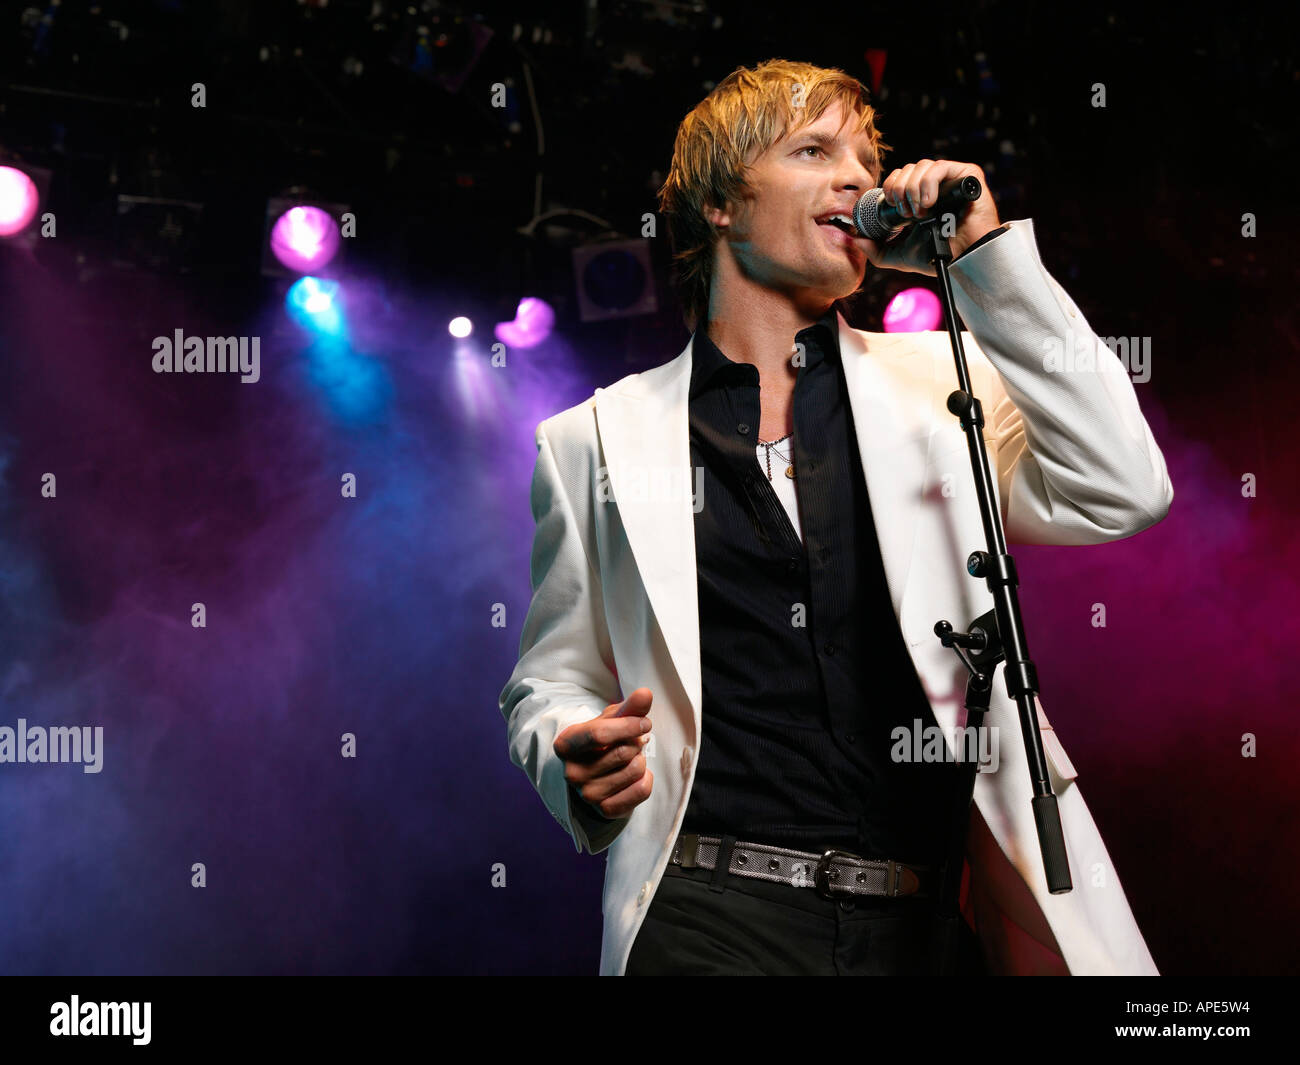 Young Man Singing into microphone on stage at Concert, low ...